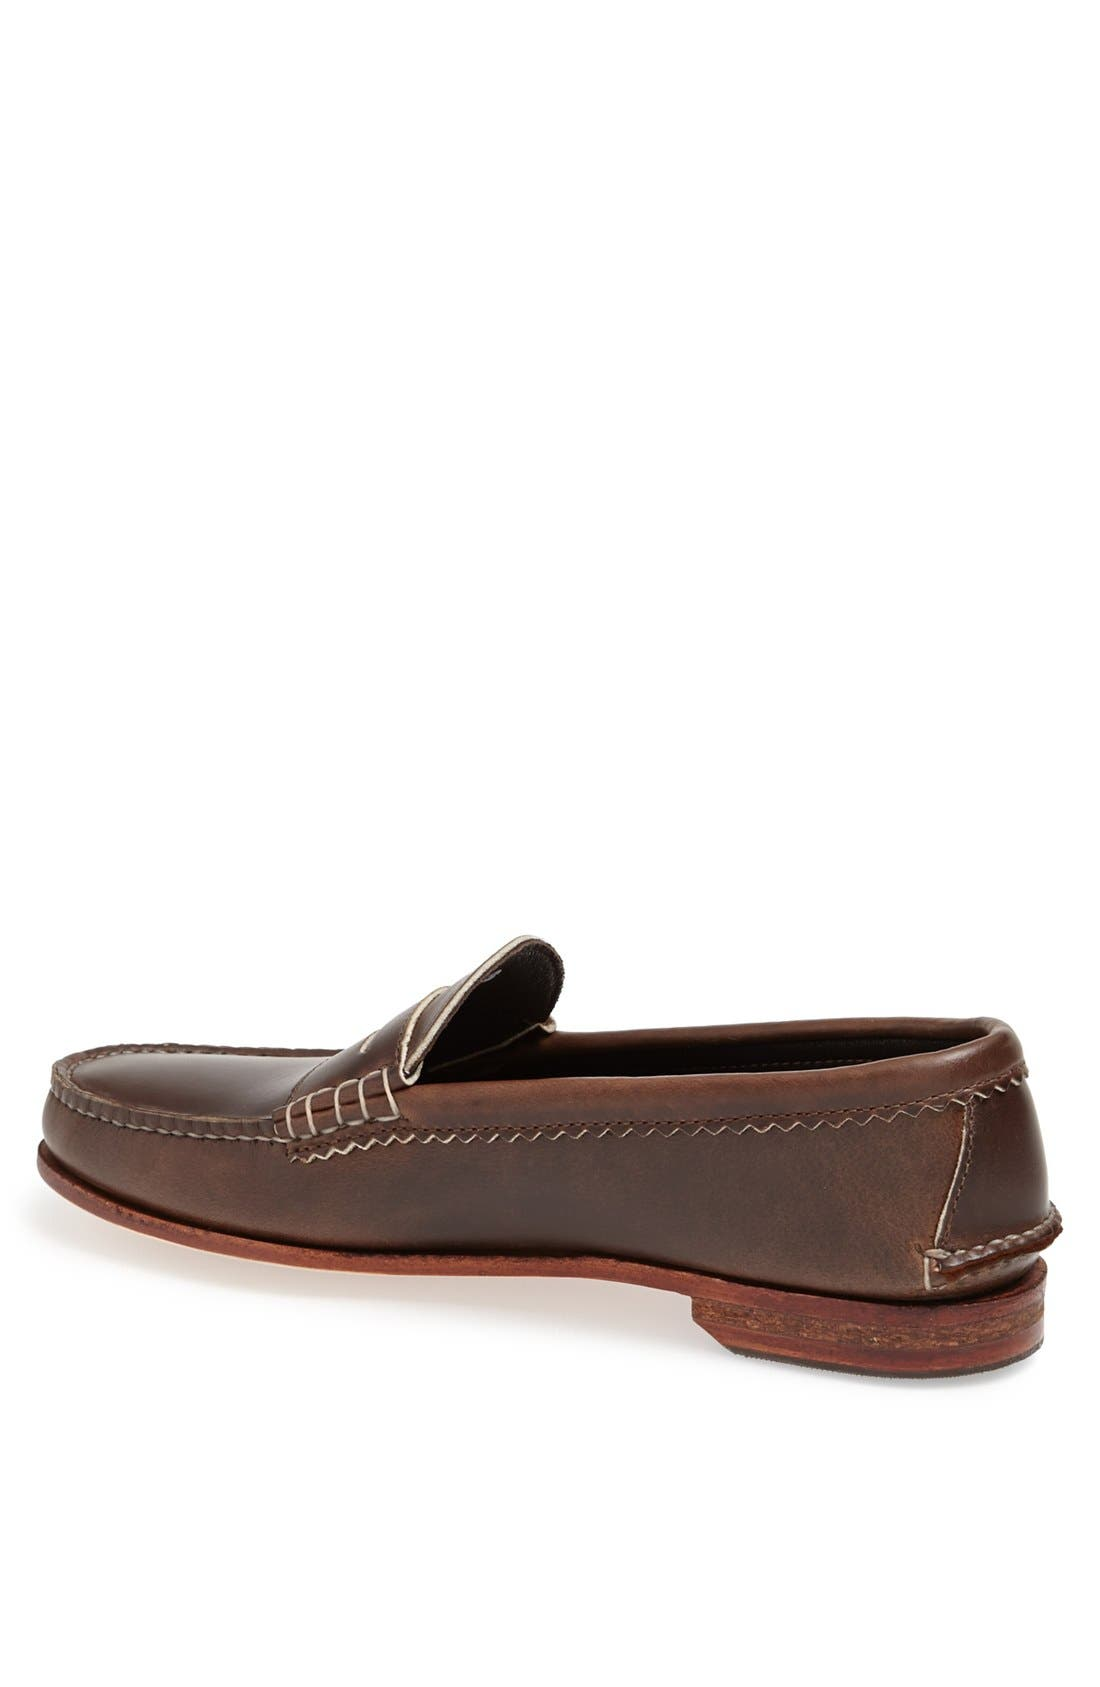 QUODDY,                             'True' Penny Loafer,                             Alternate thumbnail 2, color,                             204